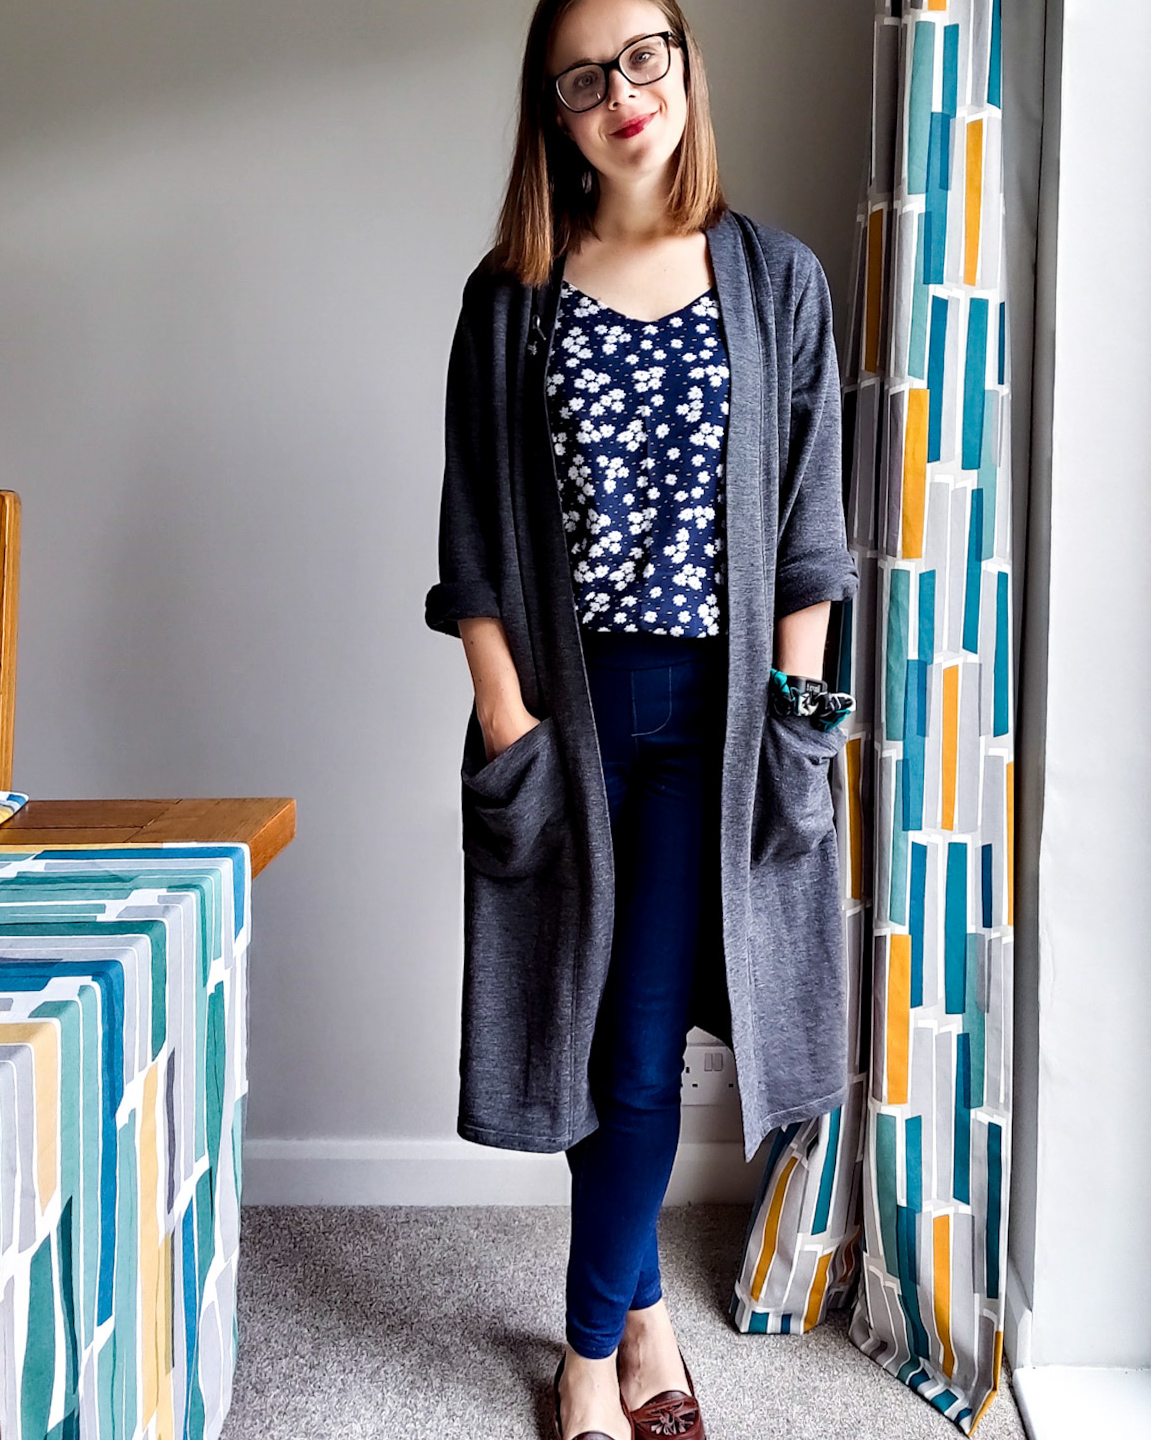 Helen is stood looking towaard the camera with her hands in her pockets. She is wearing blue denim SOS pants, a blue ogden cami and a grey knee-length kinder cardigan